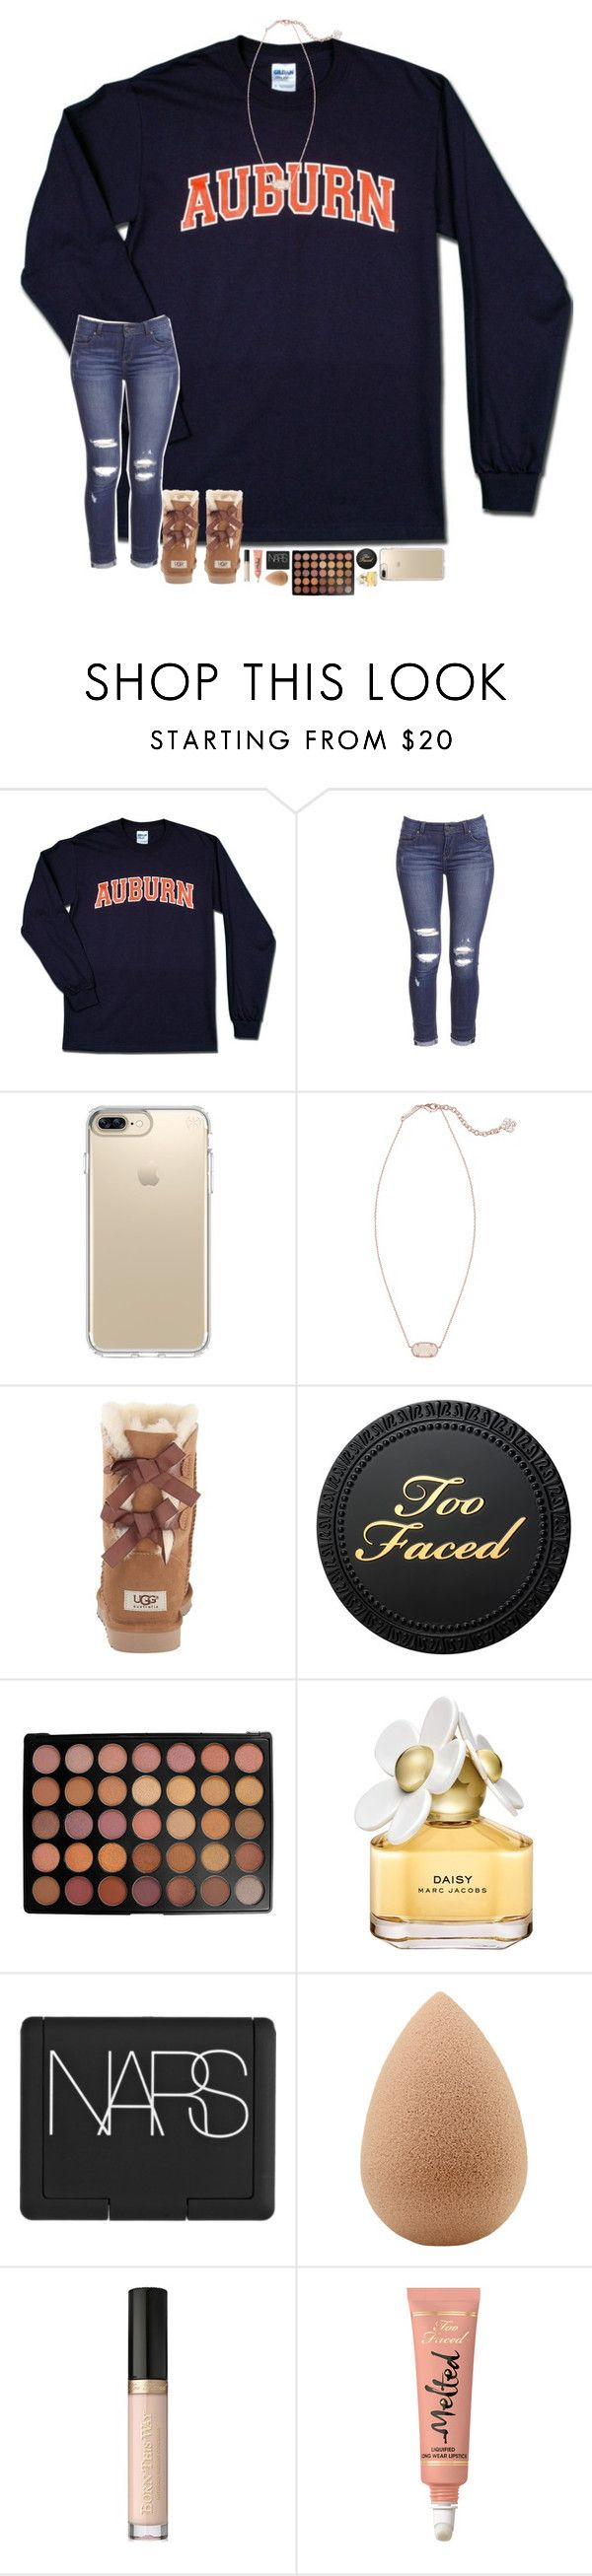 """WAR EAGLE!! "" by hopemarlee ❤ liked on Polyvore featuring Speck, Kendra Scott, UGG Australia, Morphe, Marc Jacobs, NARS Cosmetics, beautyblender, Too Faced Cosmetics and hmsloves"